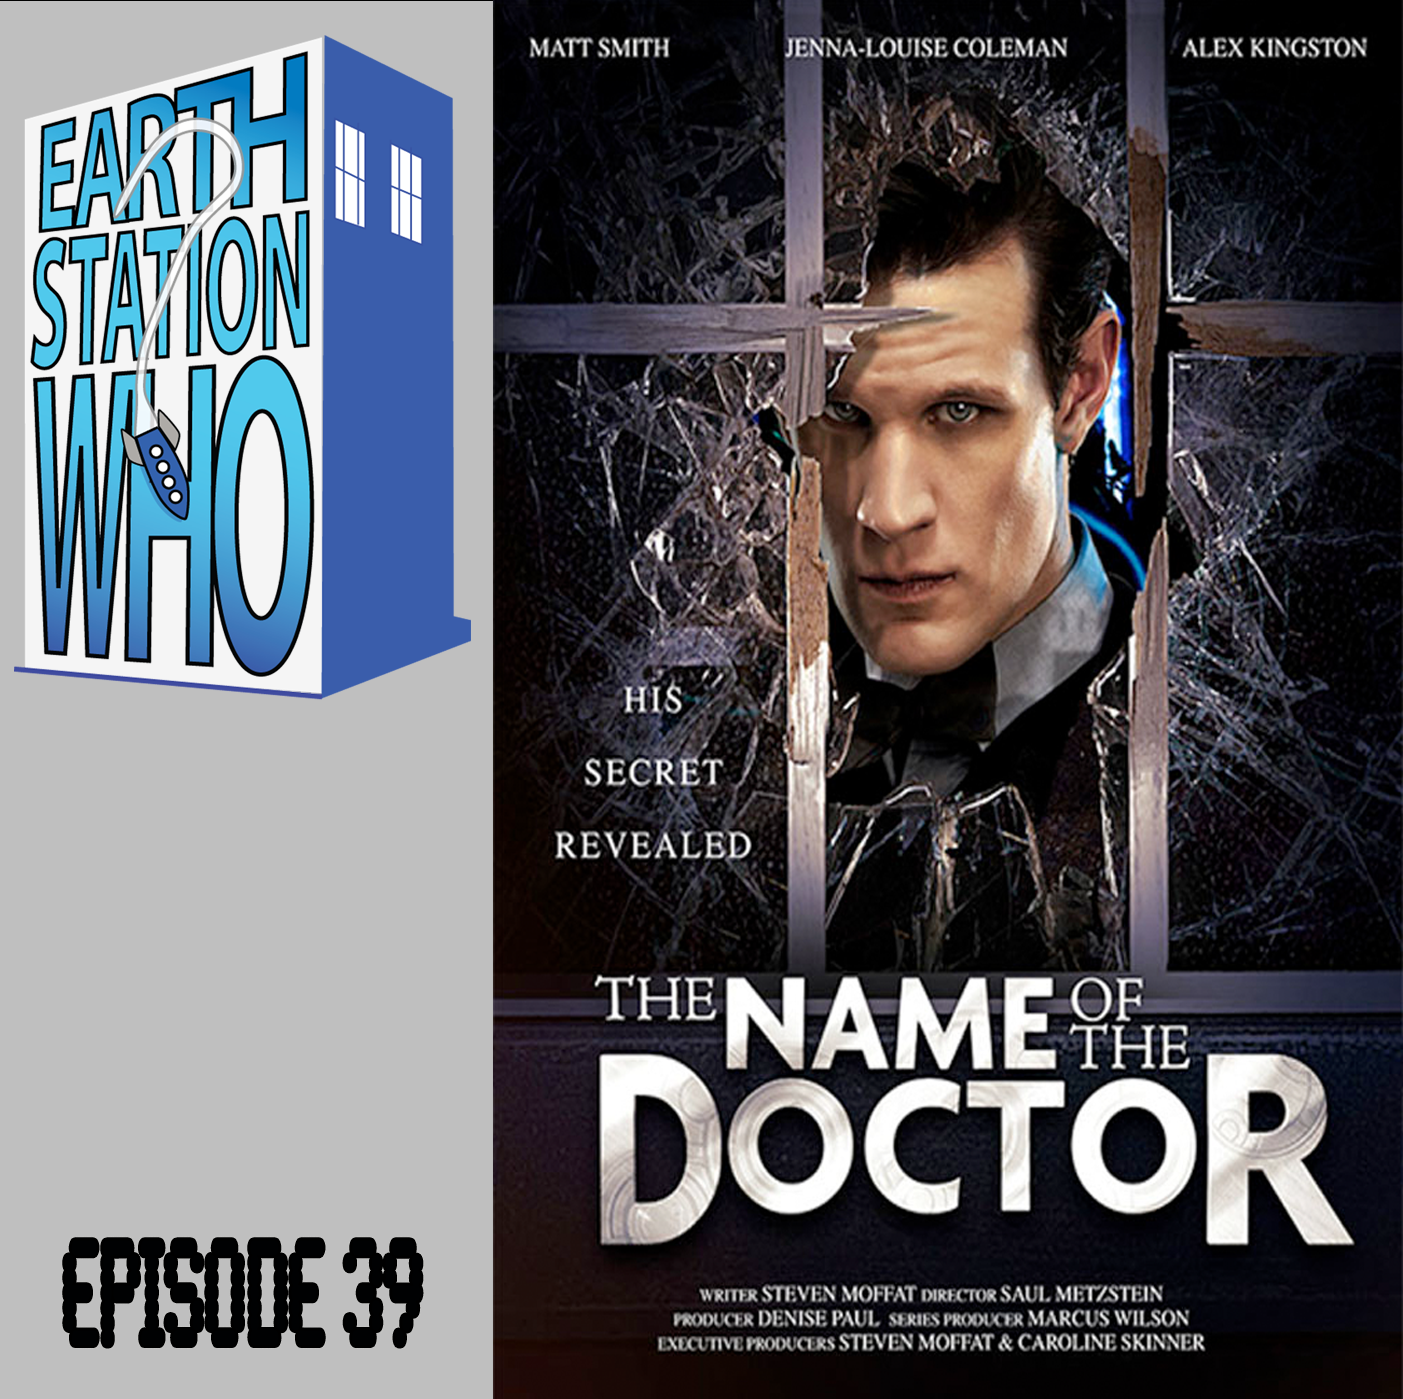 Earth Station Who Episode 39